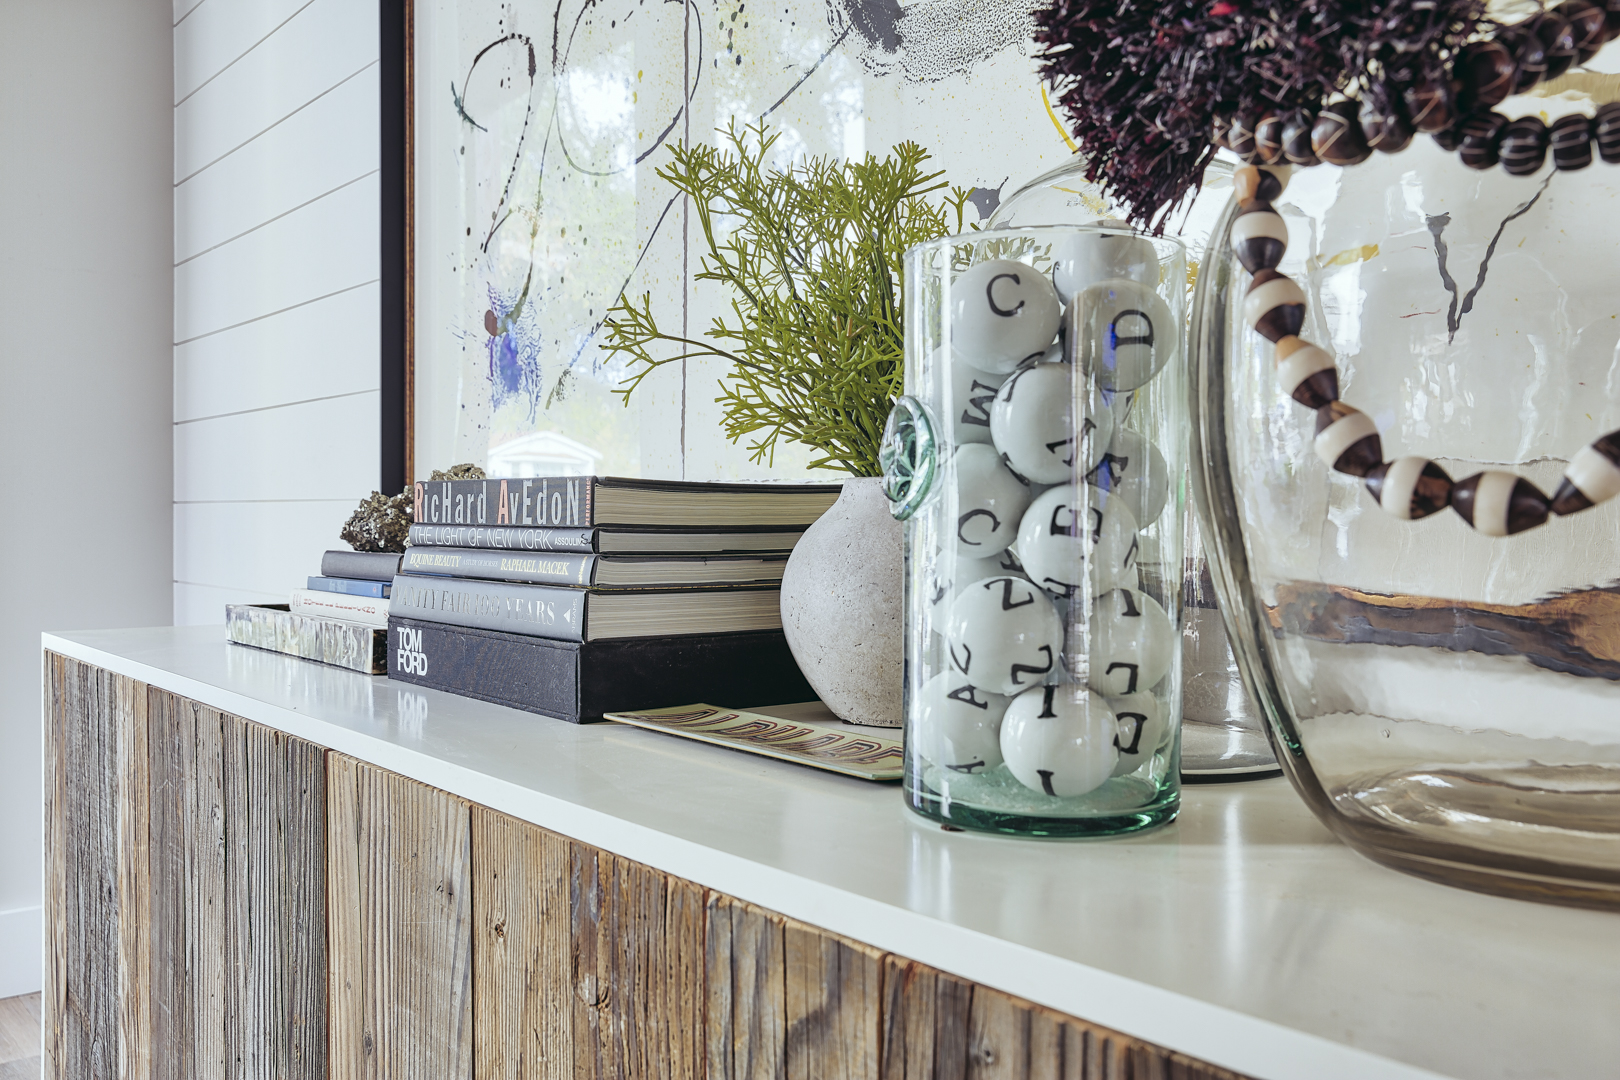 Bungalow Furniture & Accessories - Scottsdale, AZ - Console